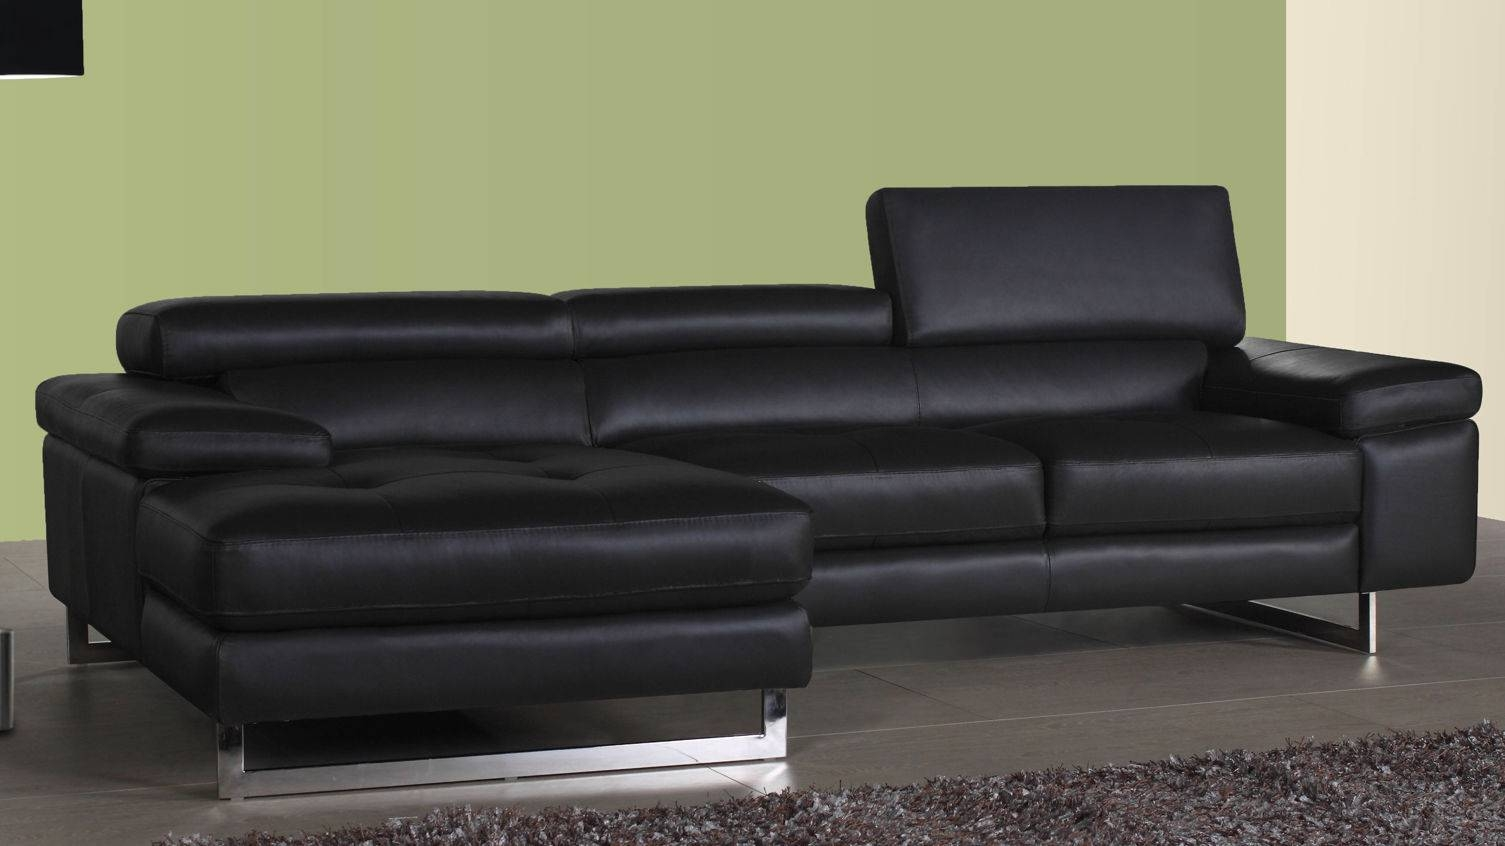 Leather Corner Sofa Chaise | Tehranmix Decoration Throughout Contemporary Black Leather Sofas (View 15 of 30)